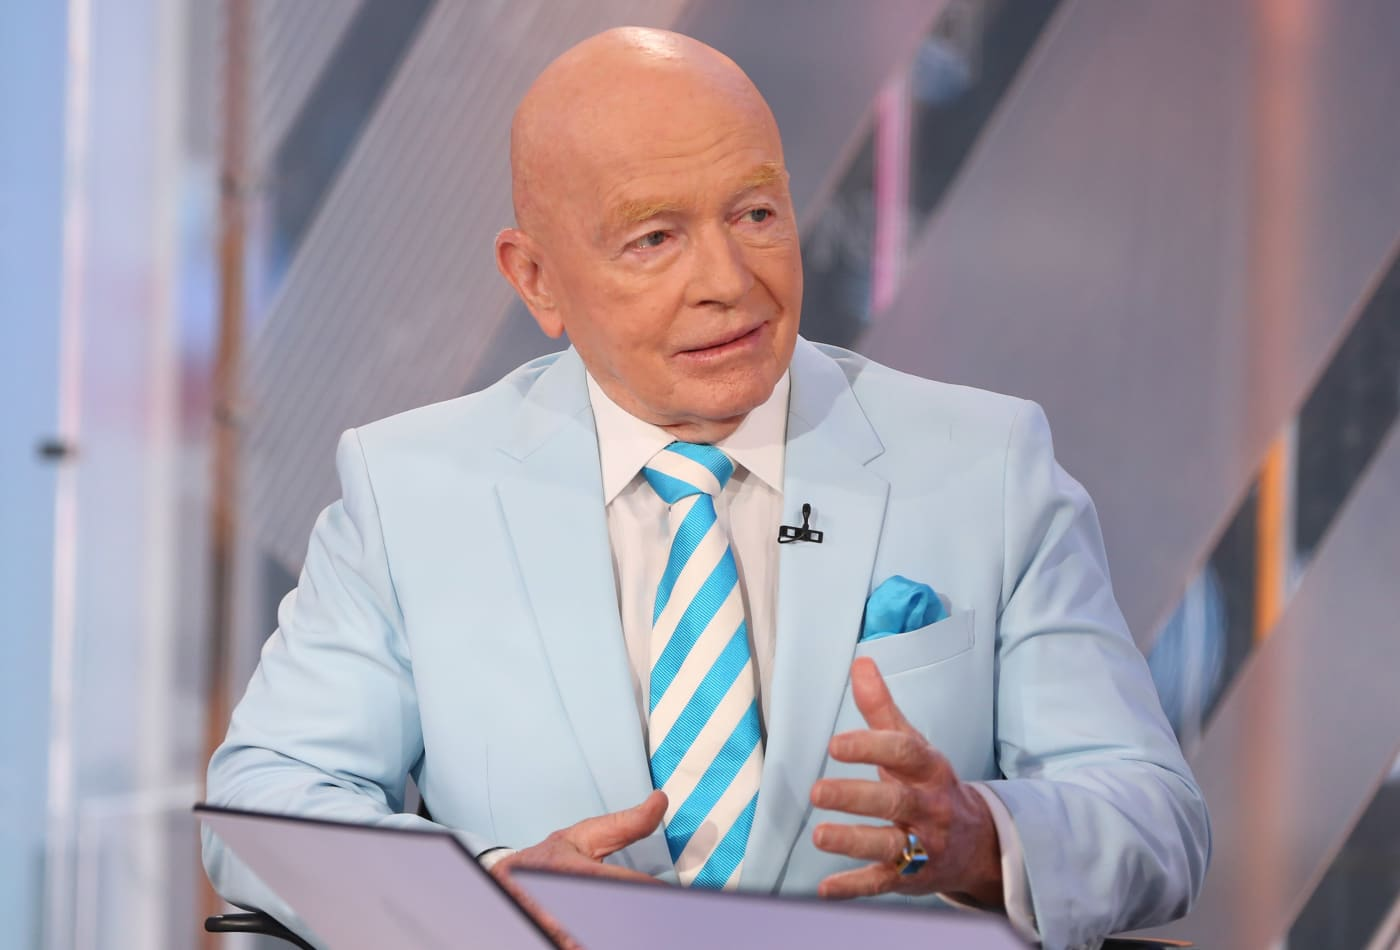 Mark Mobius says investors should look to emerging markets — virus impact will be 'temporary'